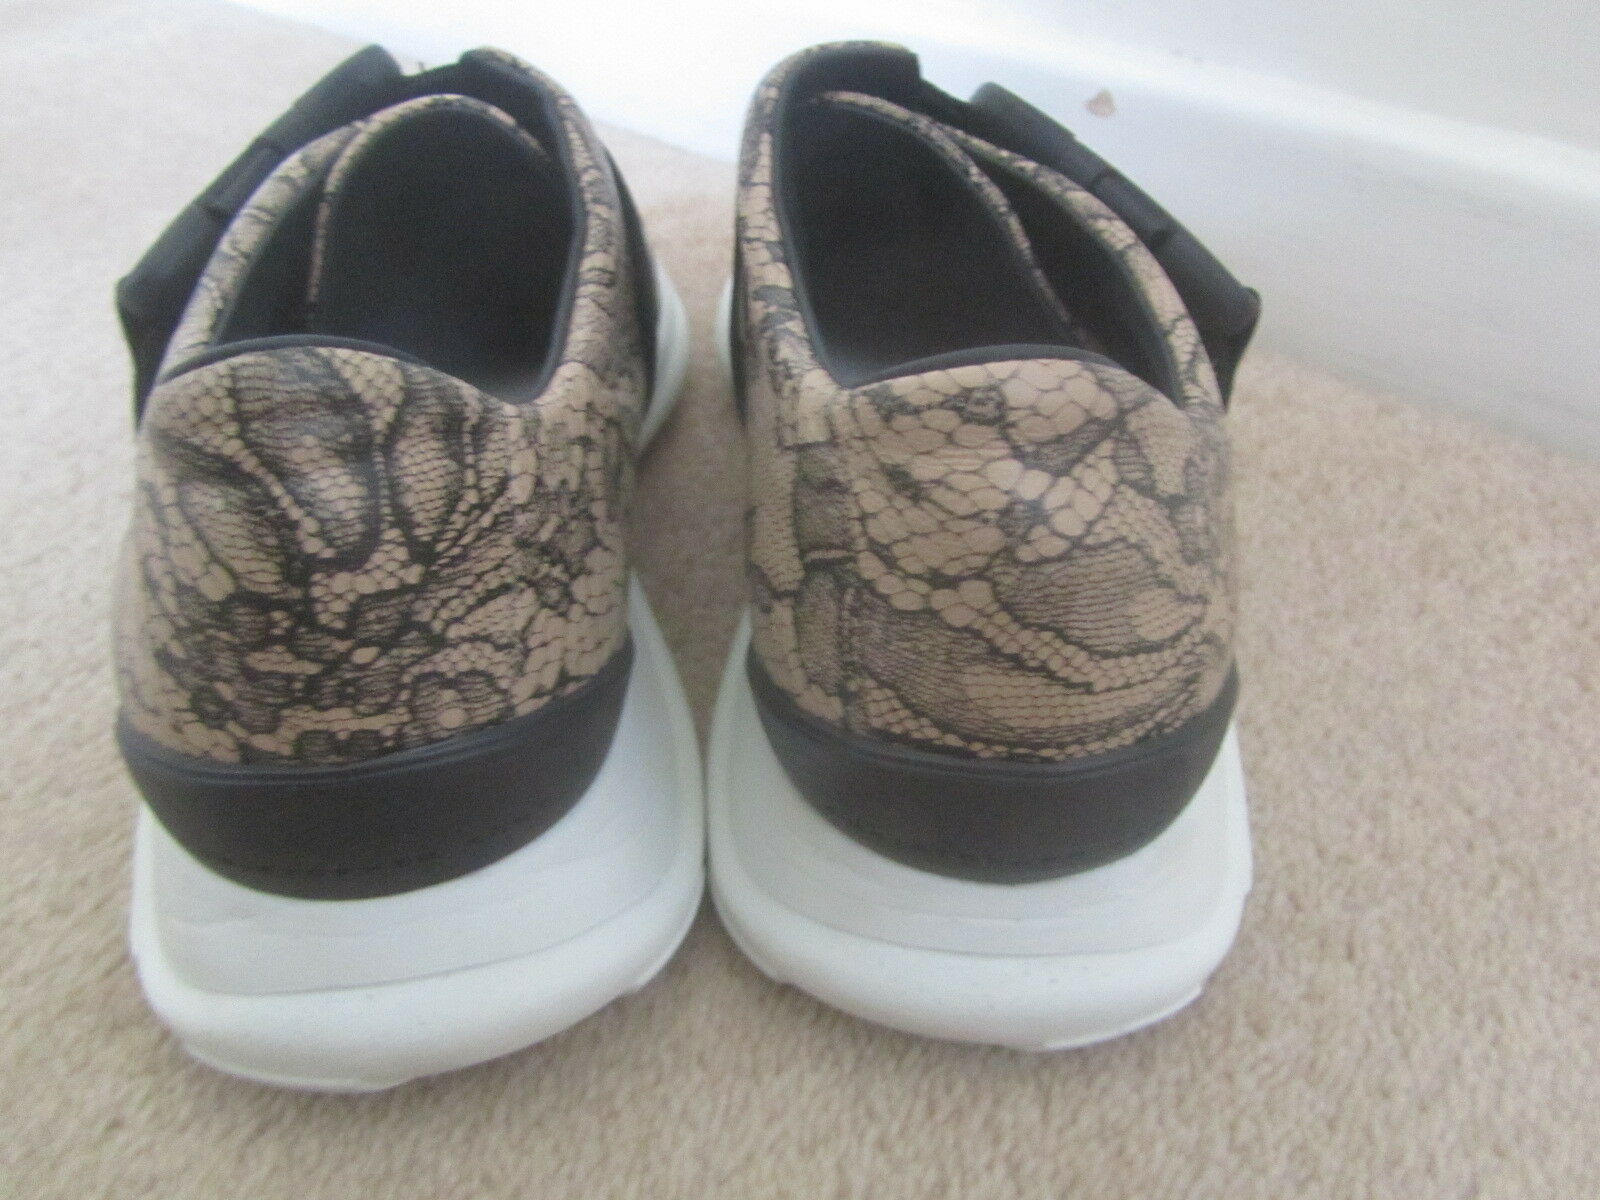 VGC NUDE CHRISTOPHER KANE BLACK & NUDE VGC LACE EFFECT TRAINERS SIZE 37 UK 4 9802b6